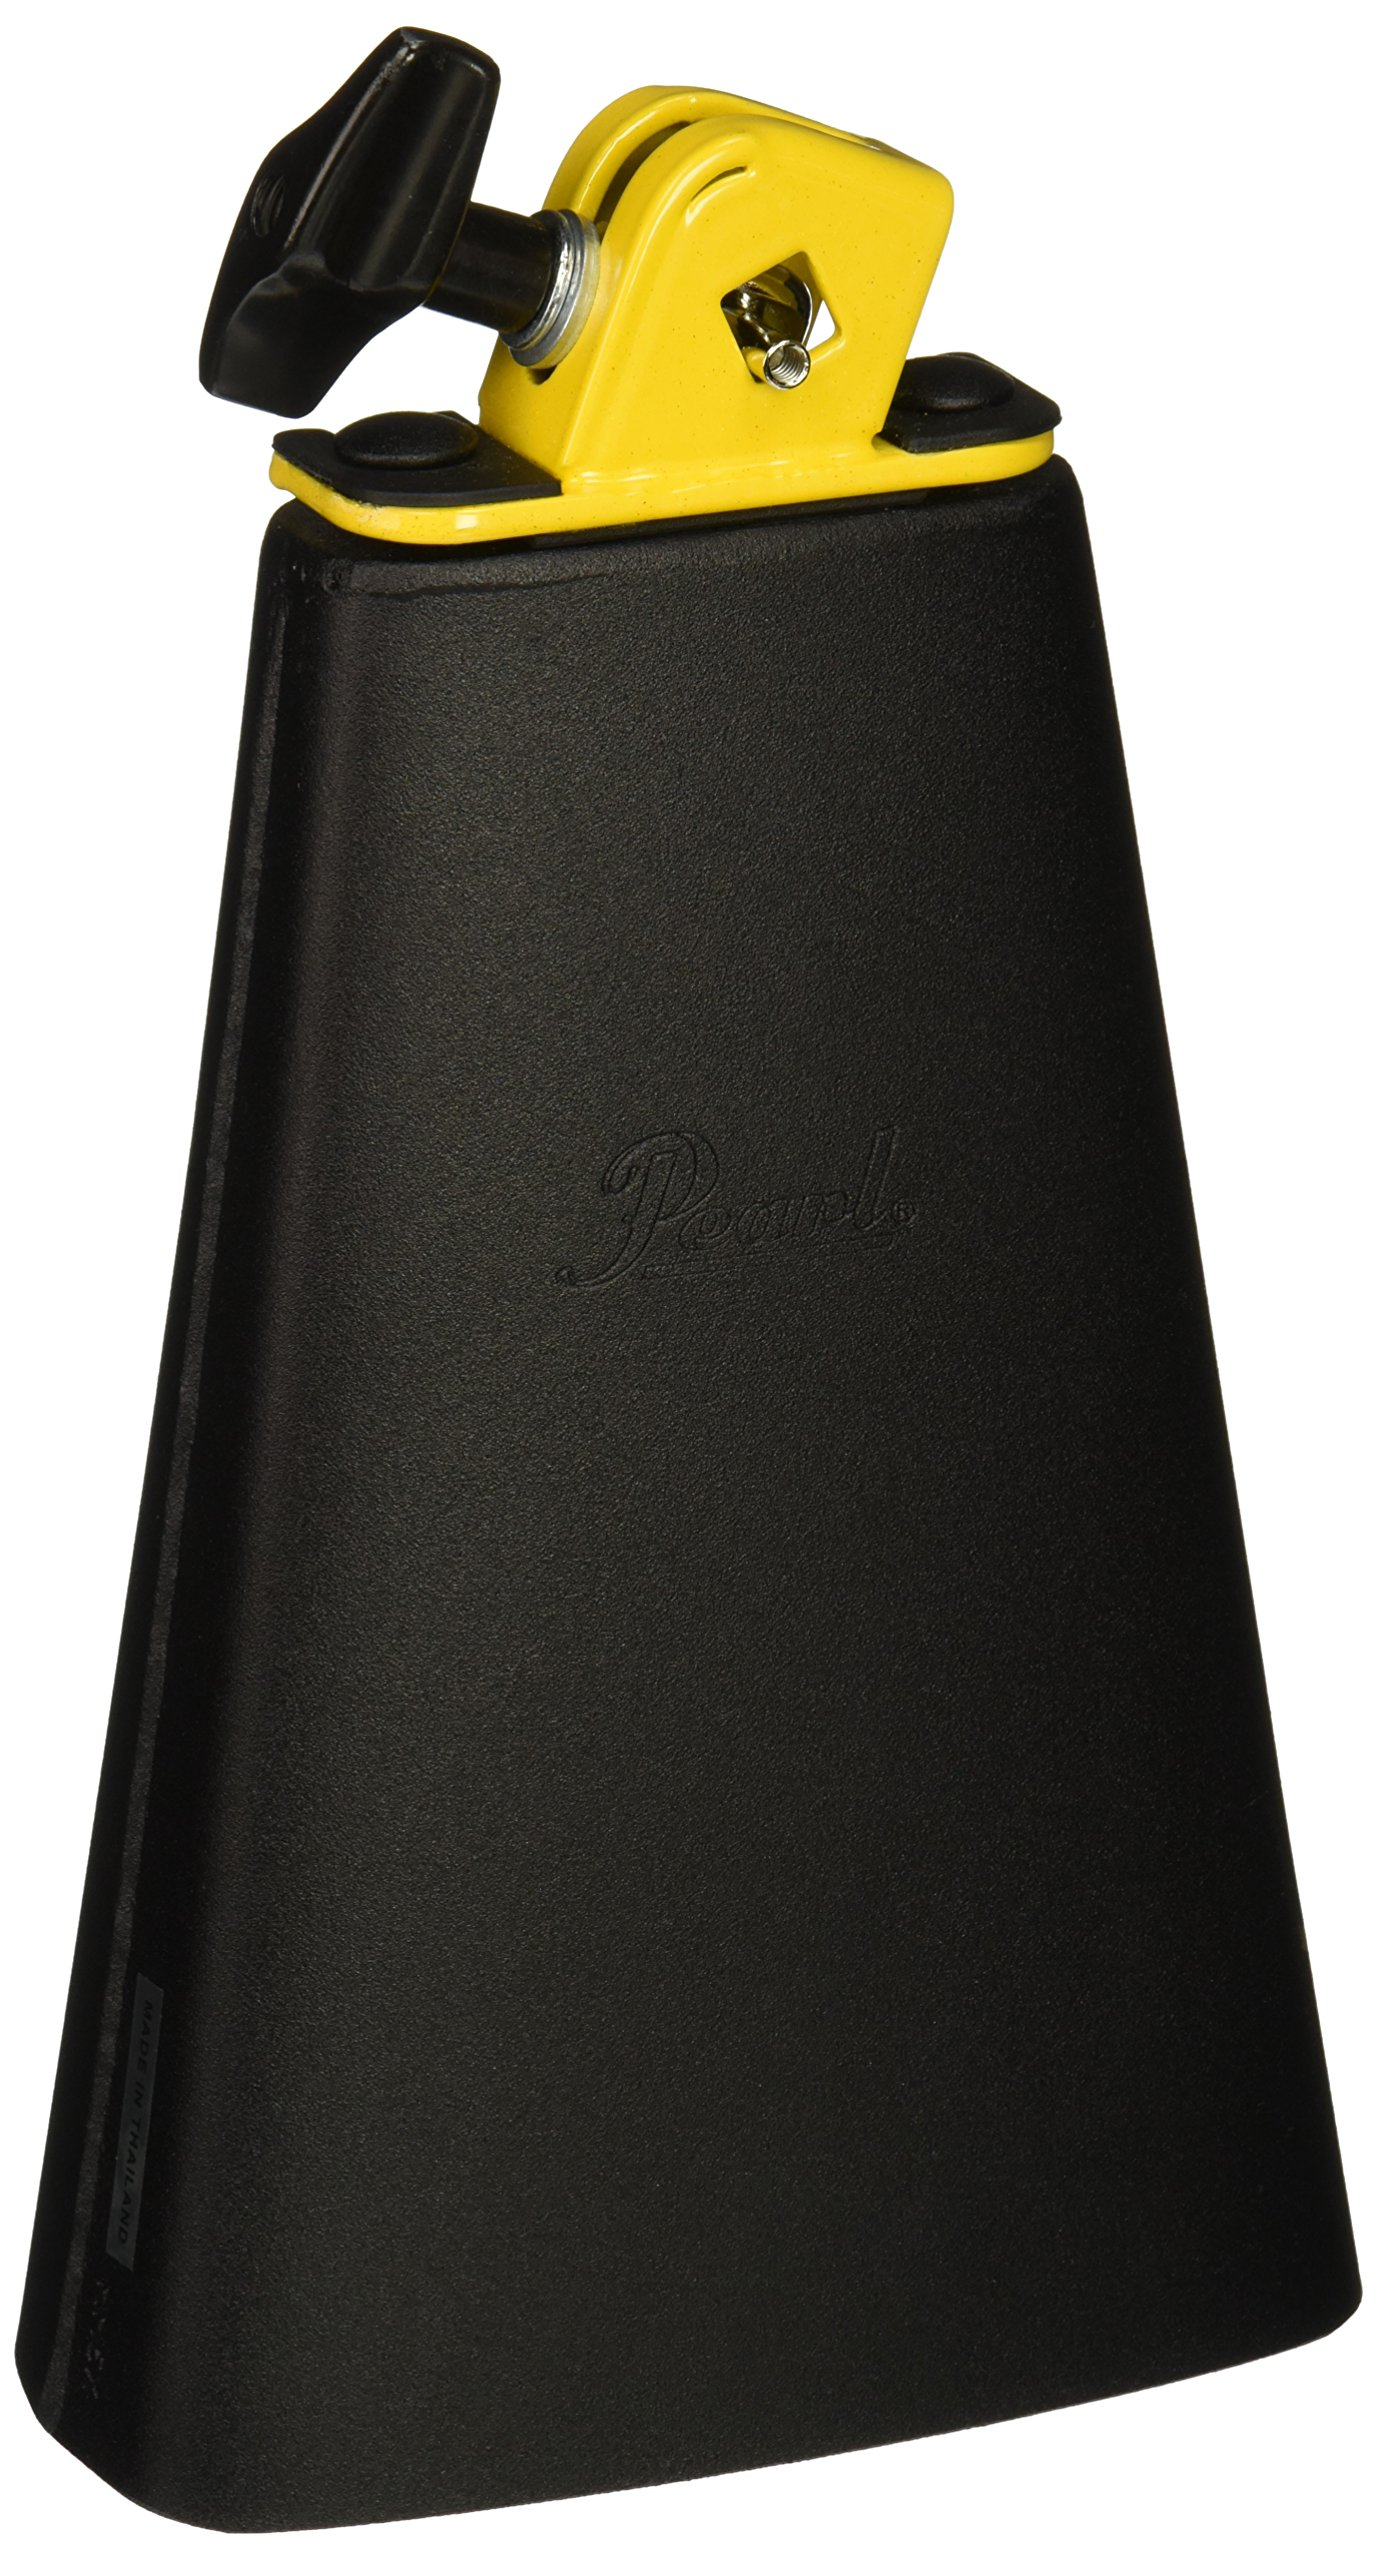 Pearl HH5X Horacio Hernandez Signature II Cowbell - Marybell - Timbale with QR Bracket by Pearl